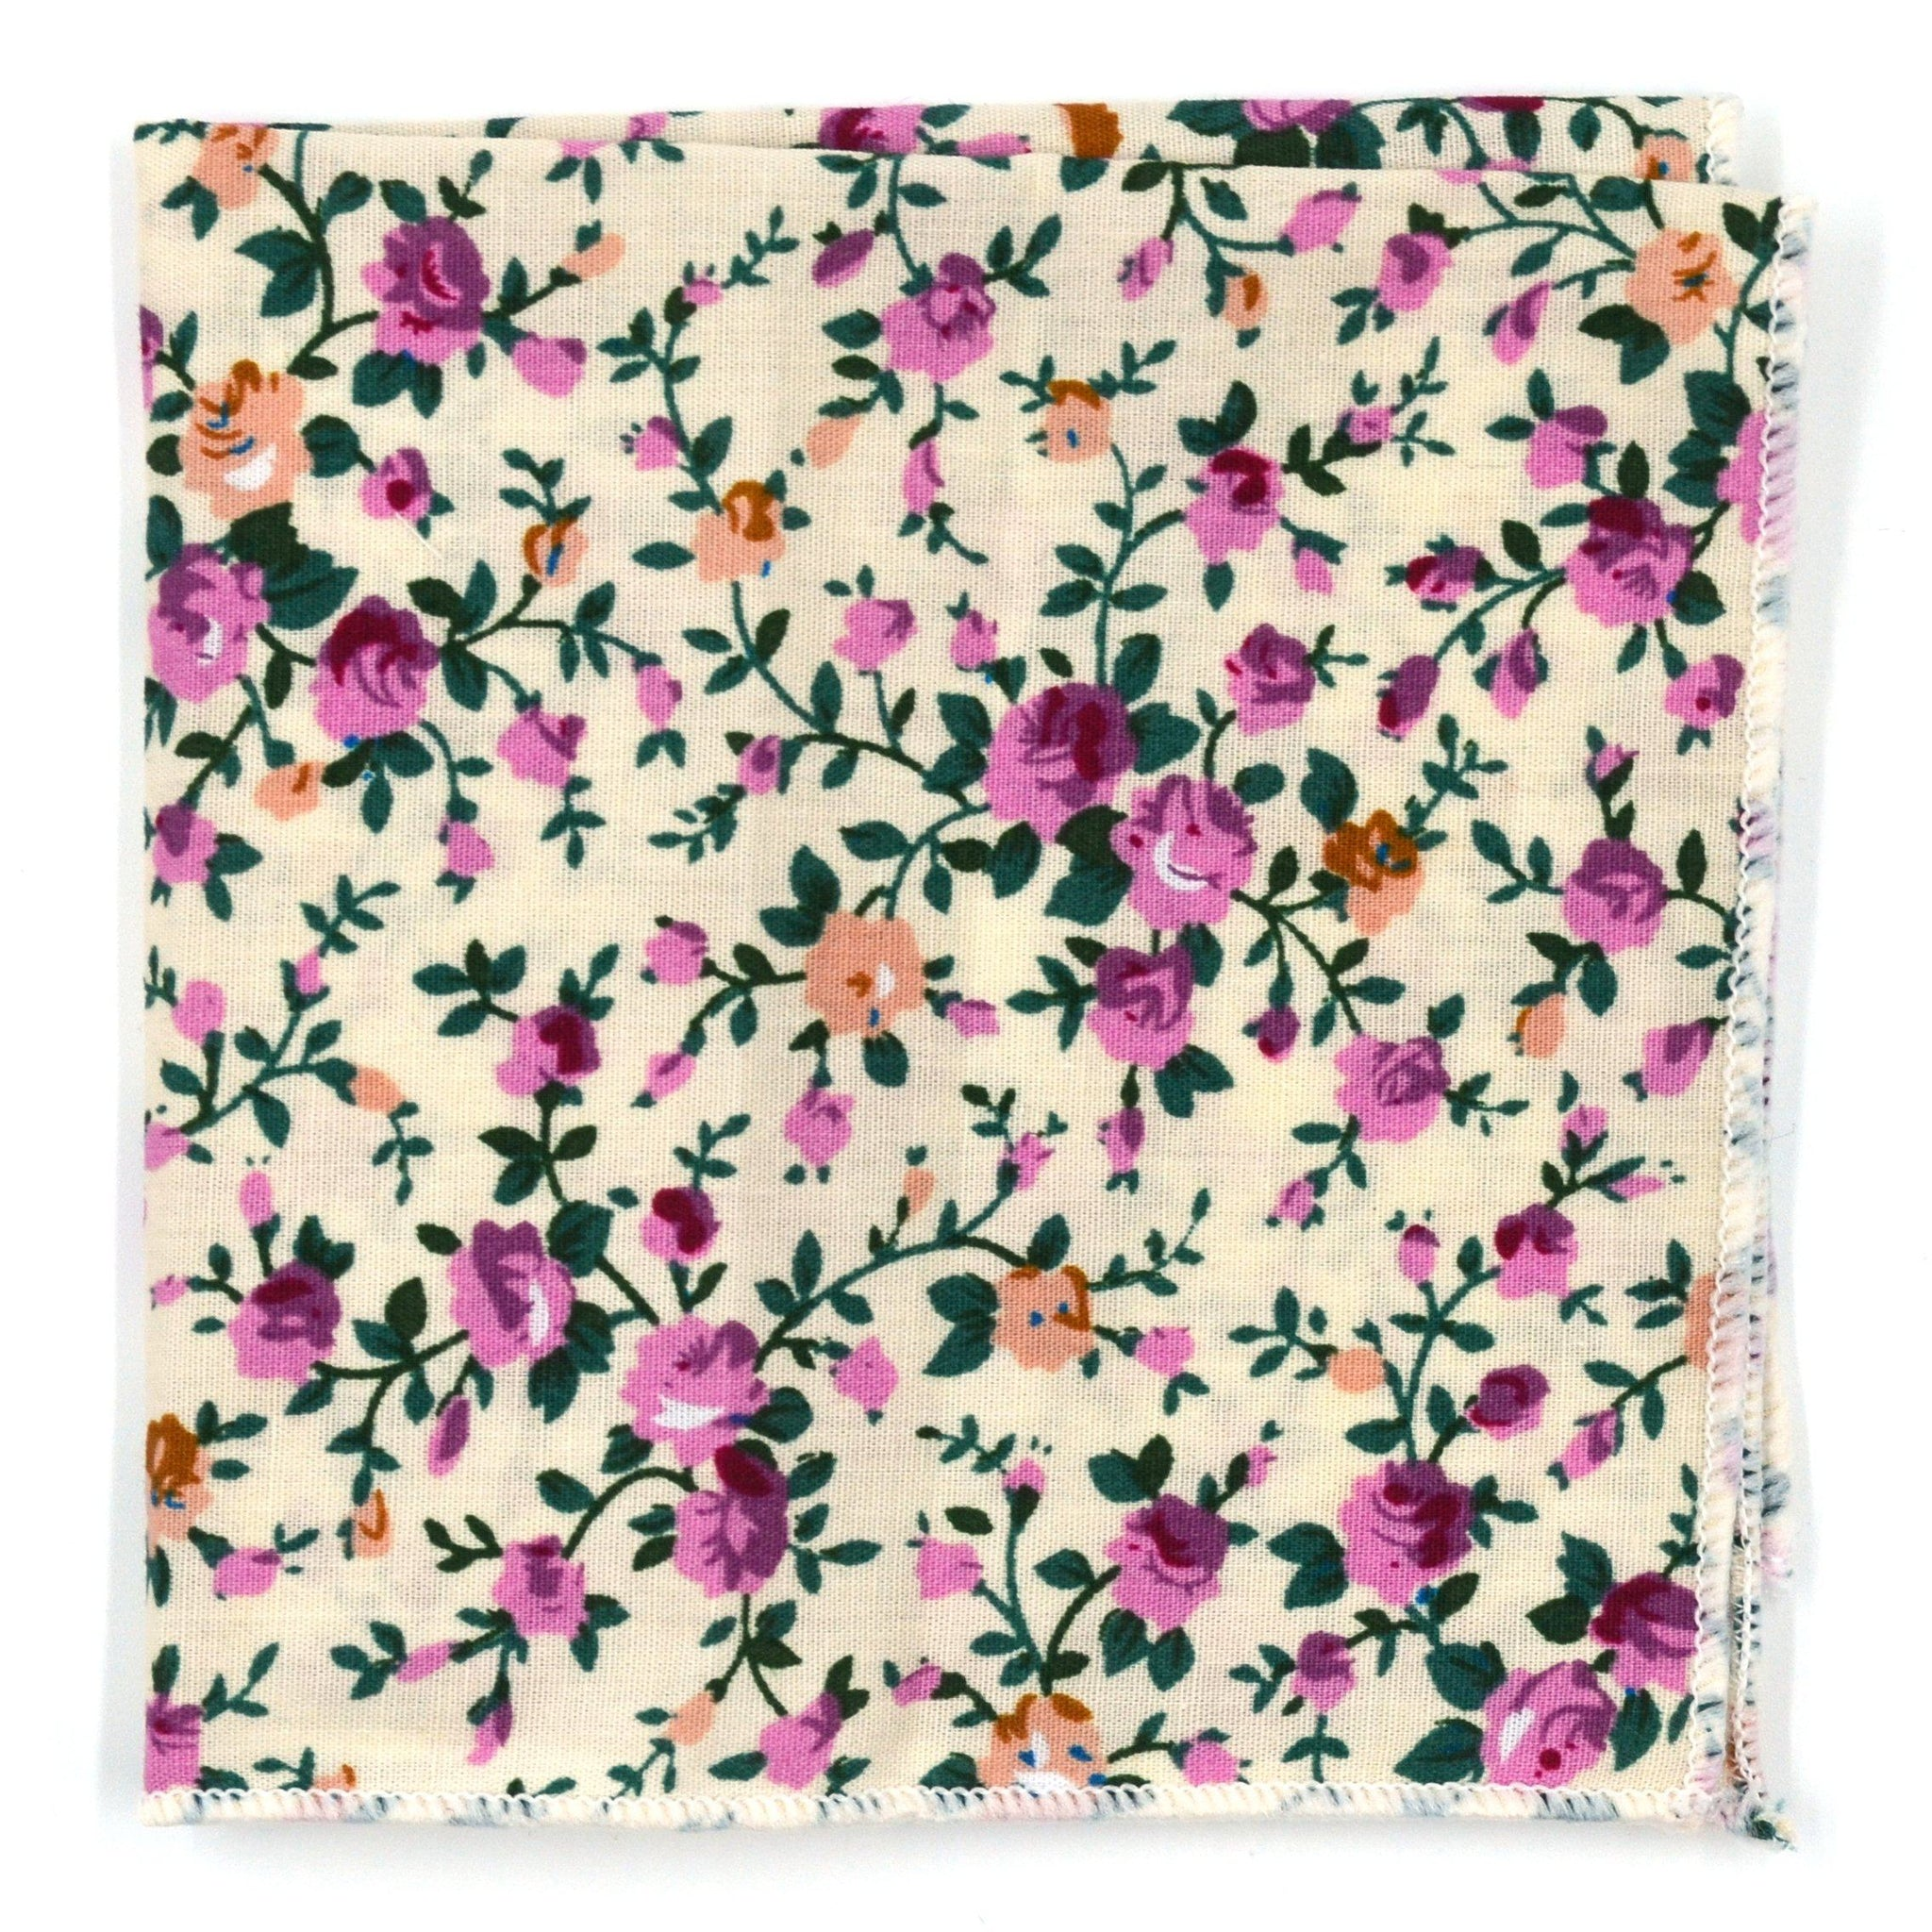 Pocket Square - Floral Ivy Rose Pocket Square